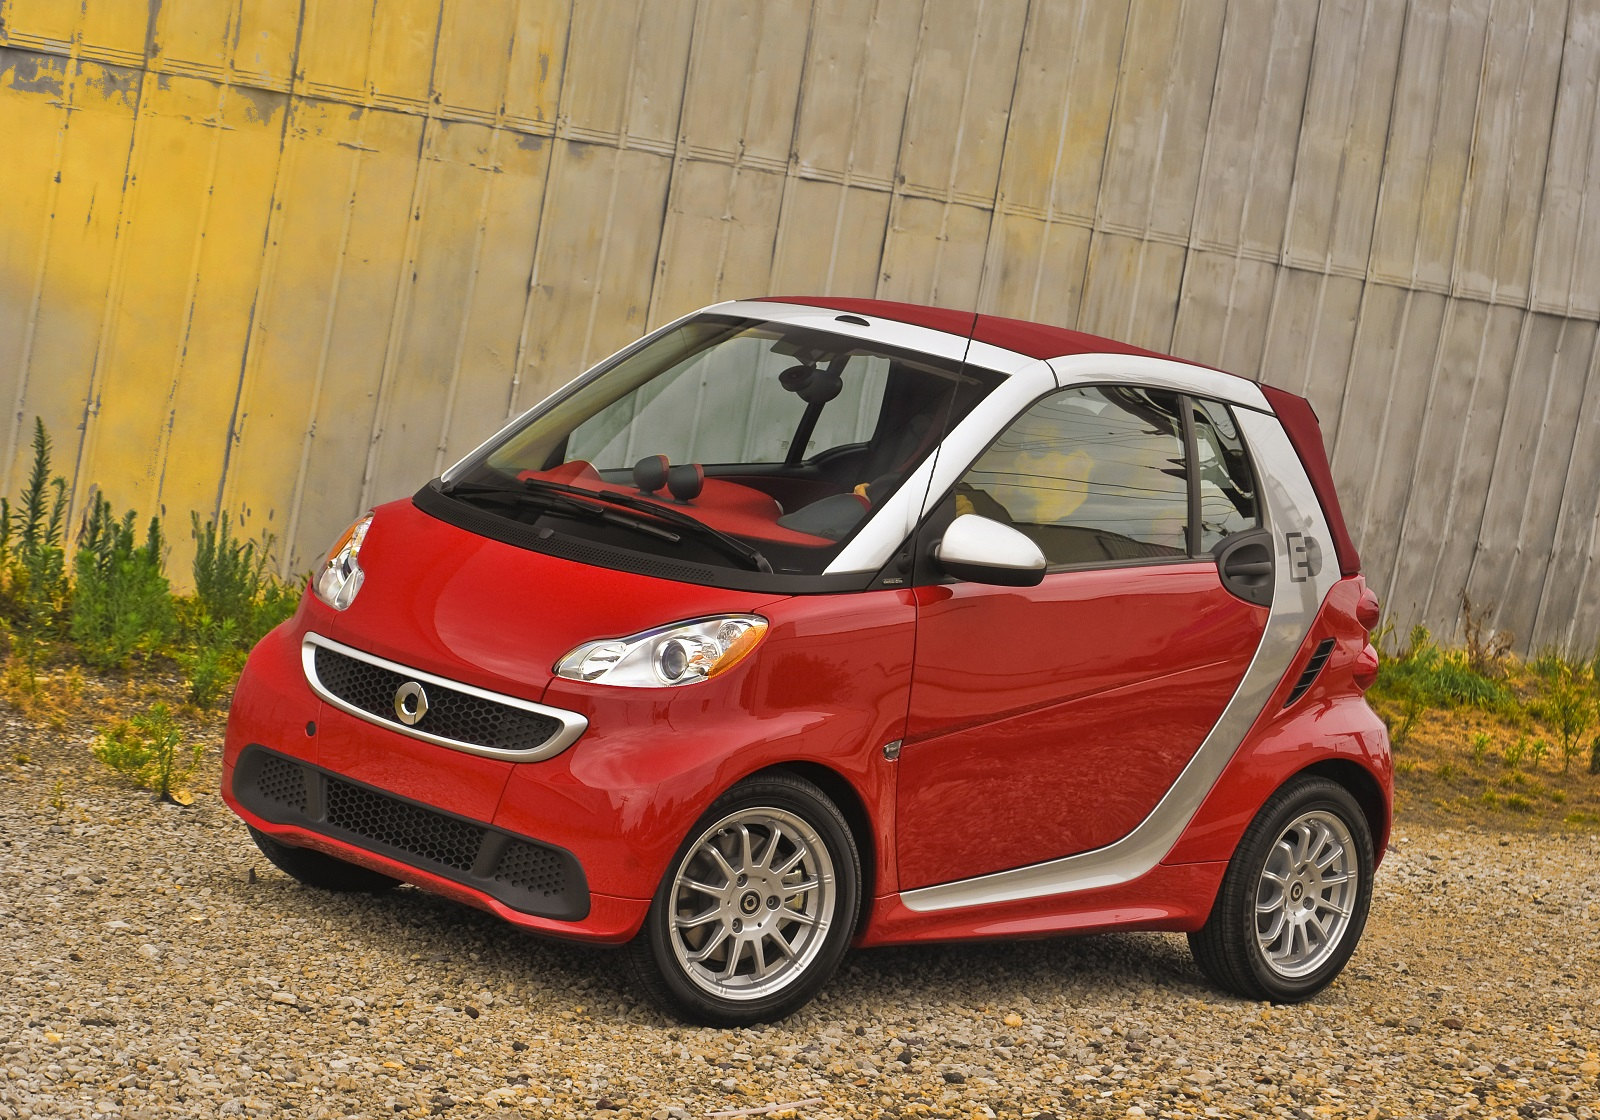 2014-smart-fortwo-electric-drive_100436159_h.jpg